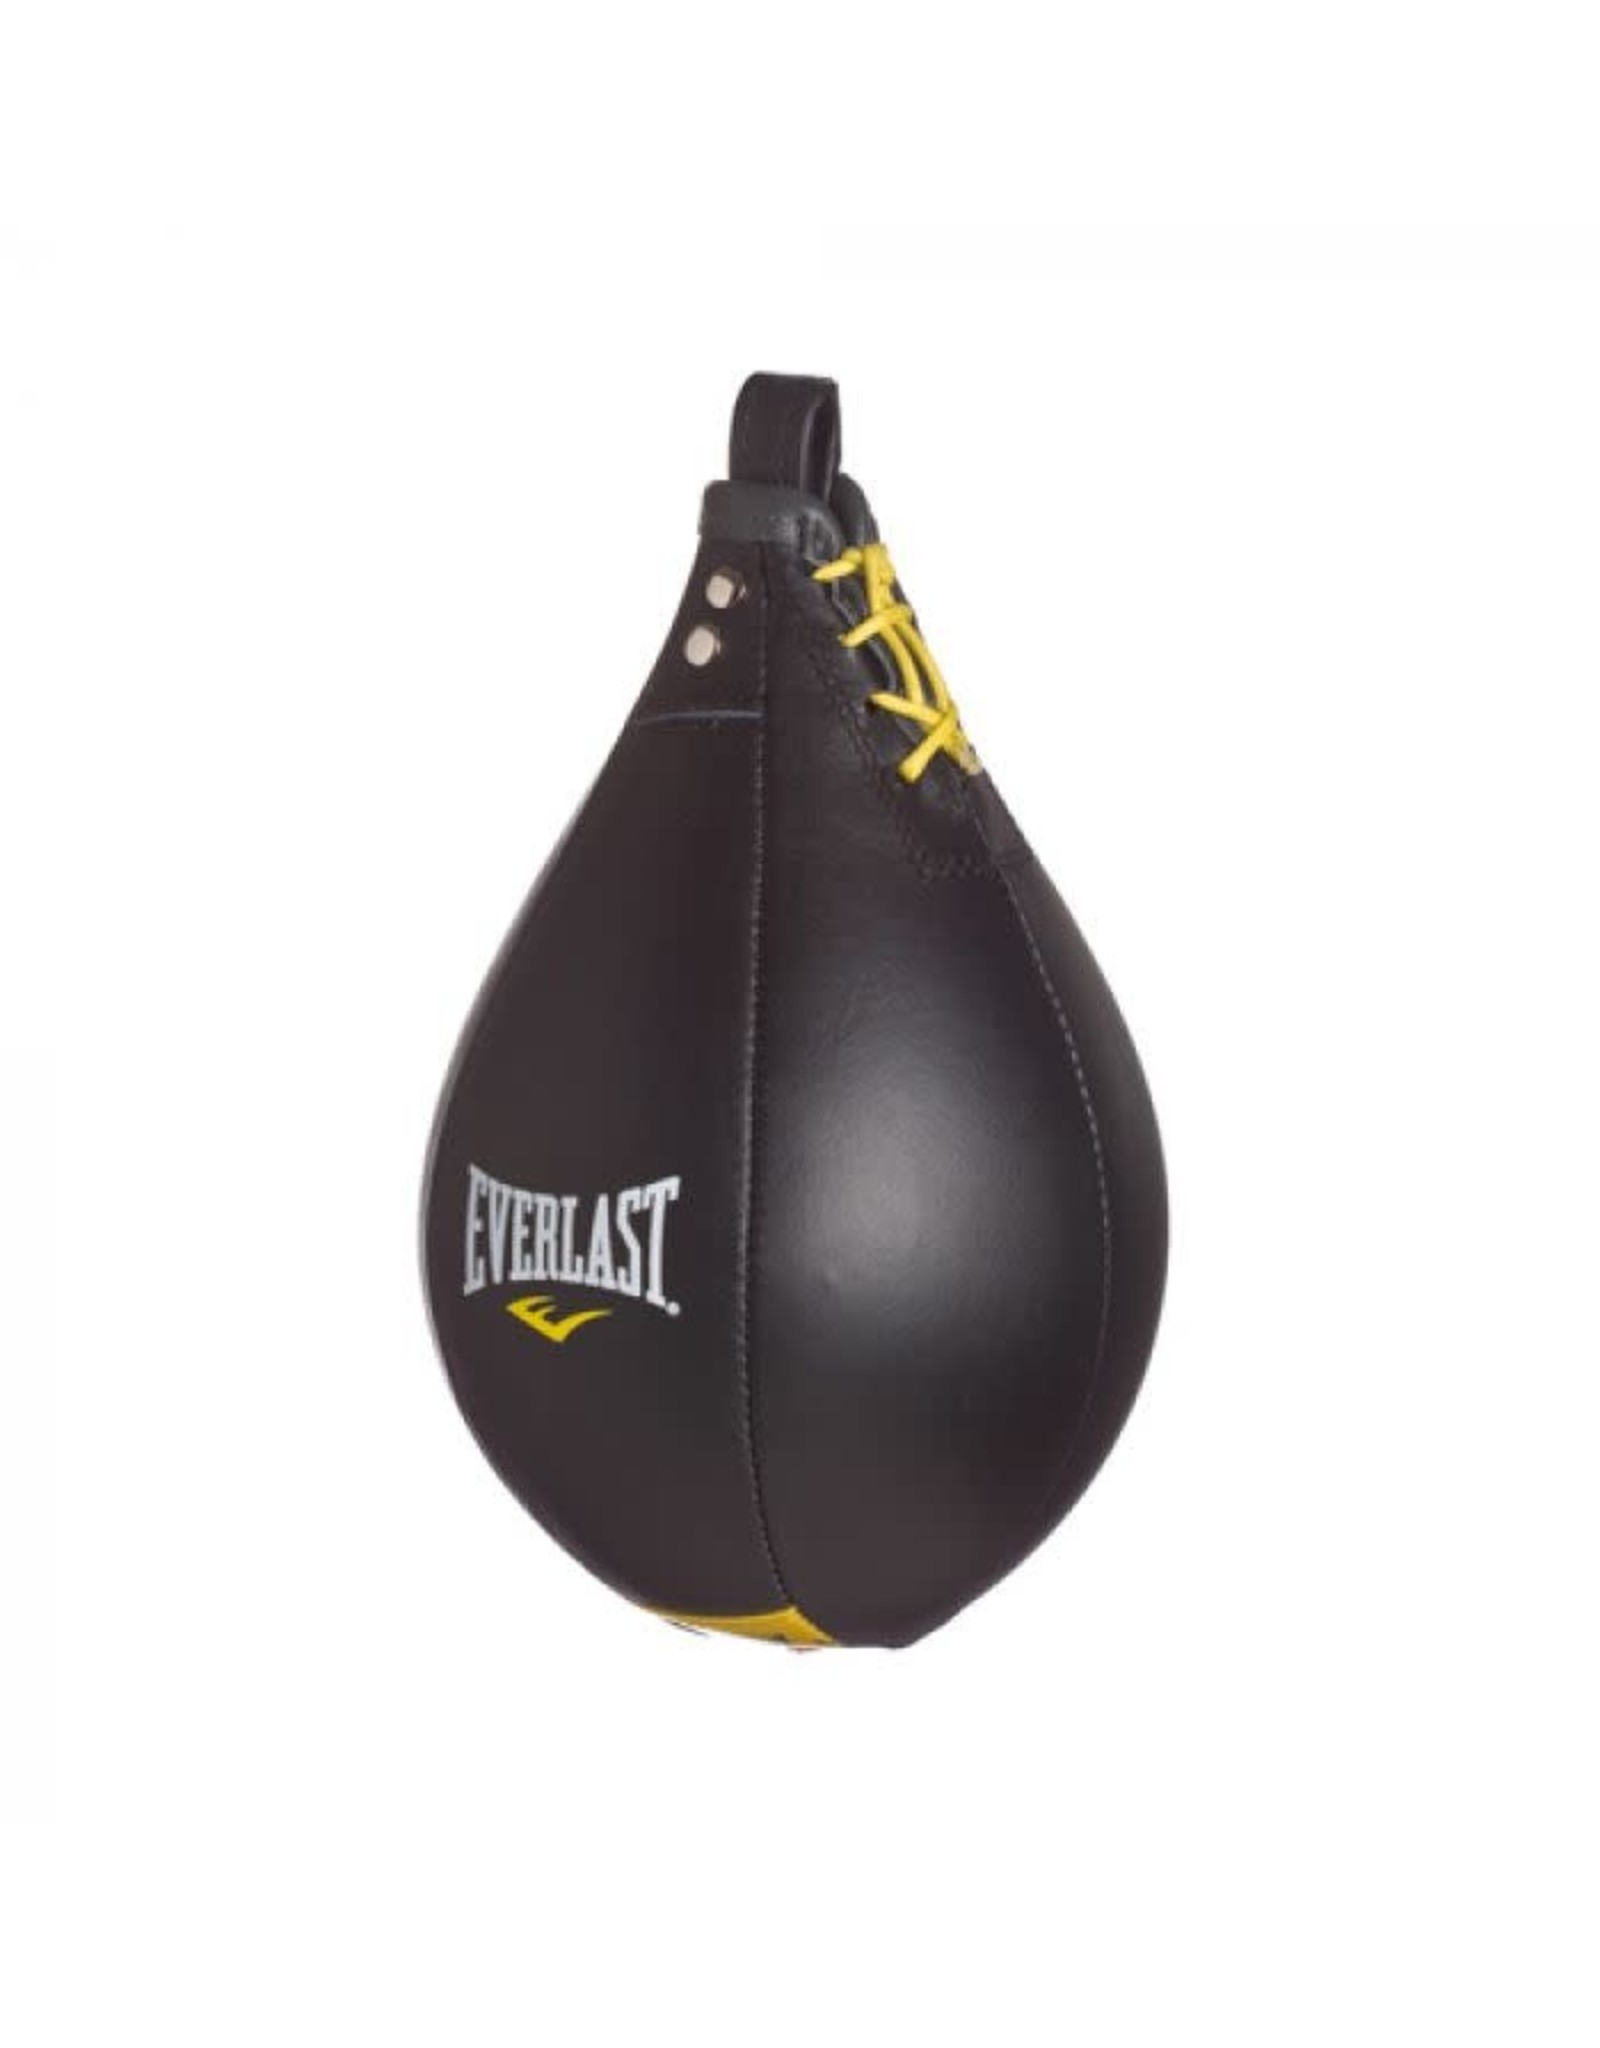 Everlast Everlast Leather Speed Bag